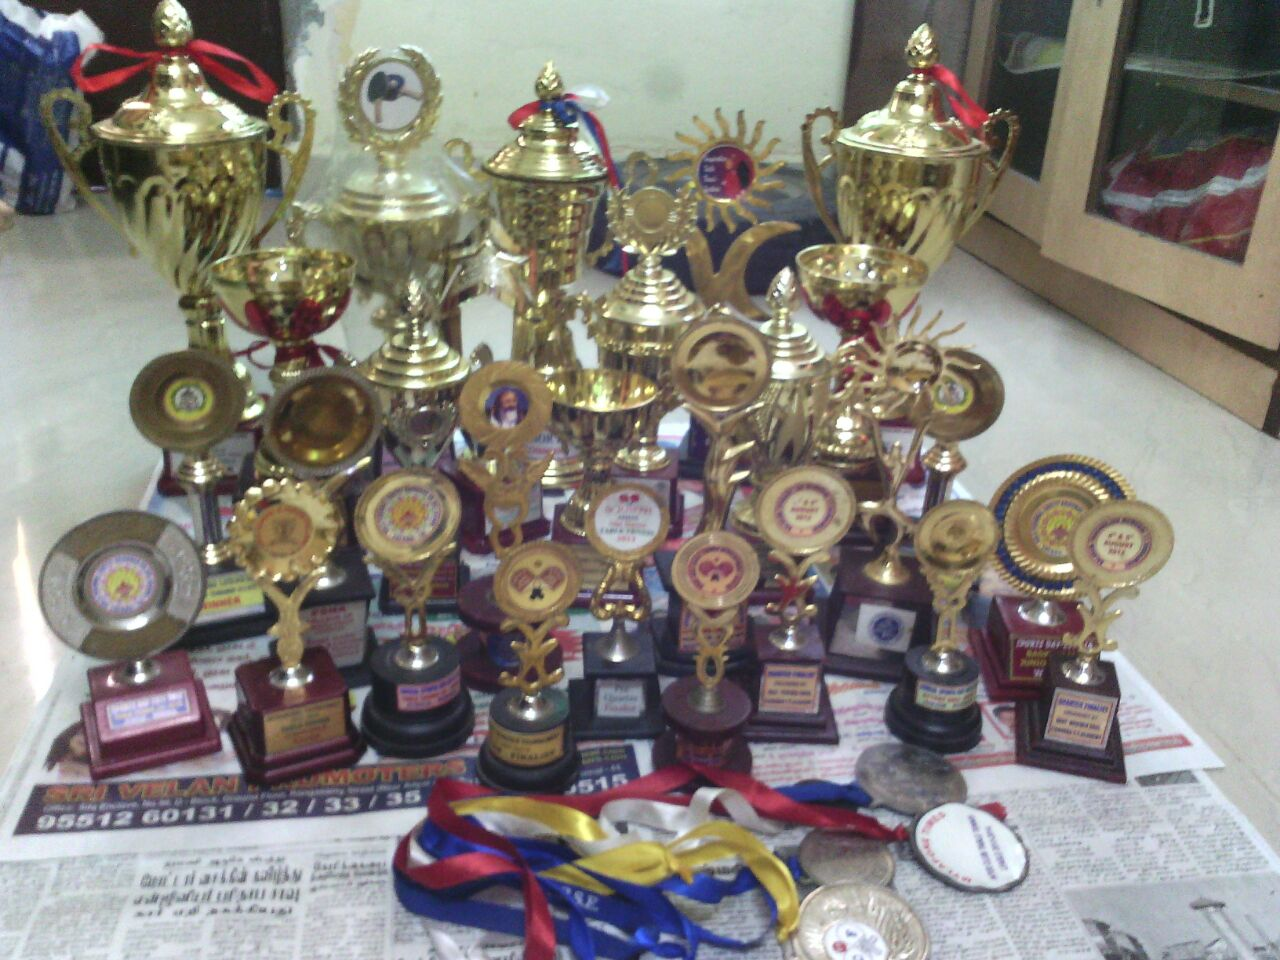 A collection of medals and trophies won by Malesh Kumar Yadav and Vaishnavi